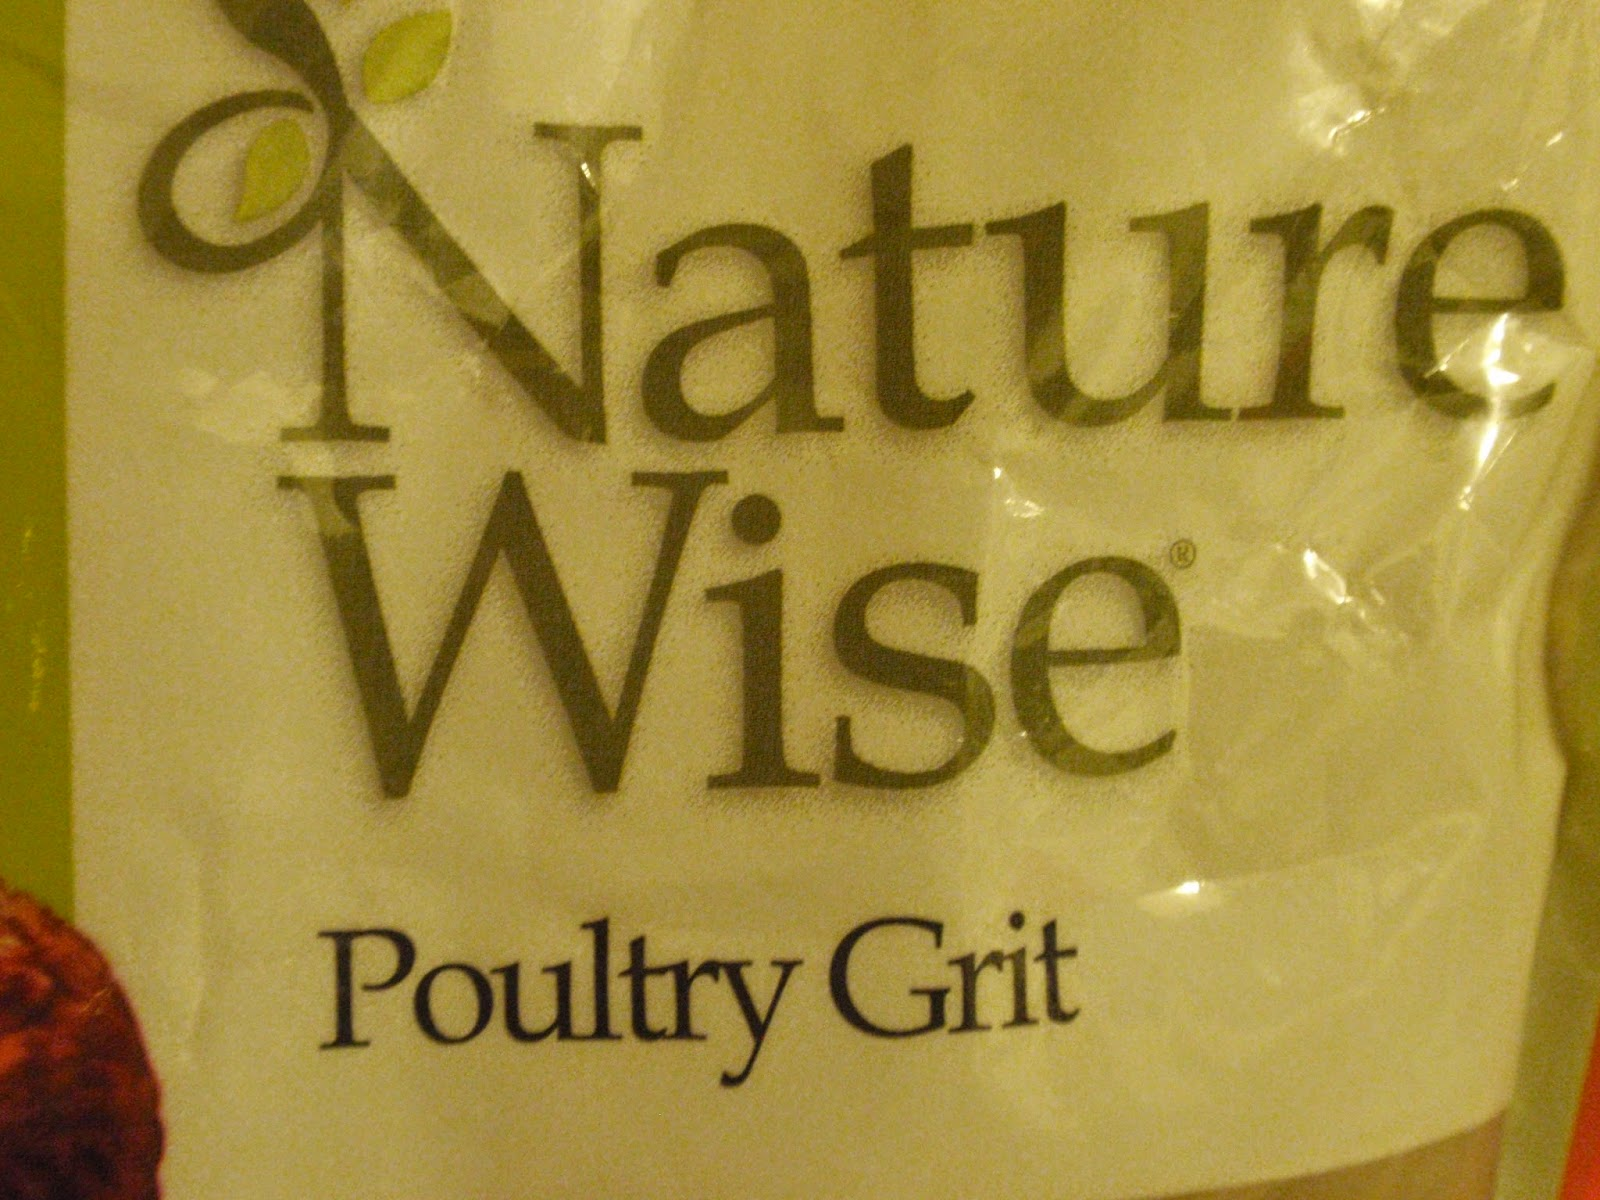 poultry grit